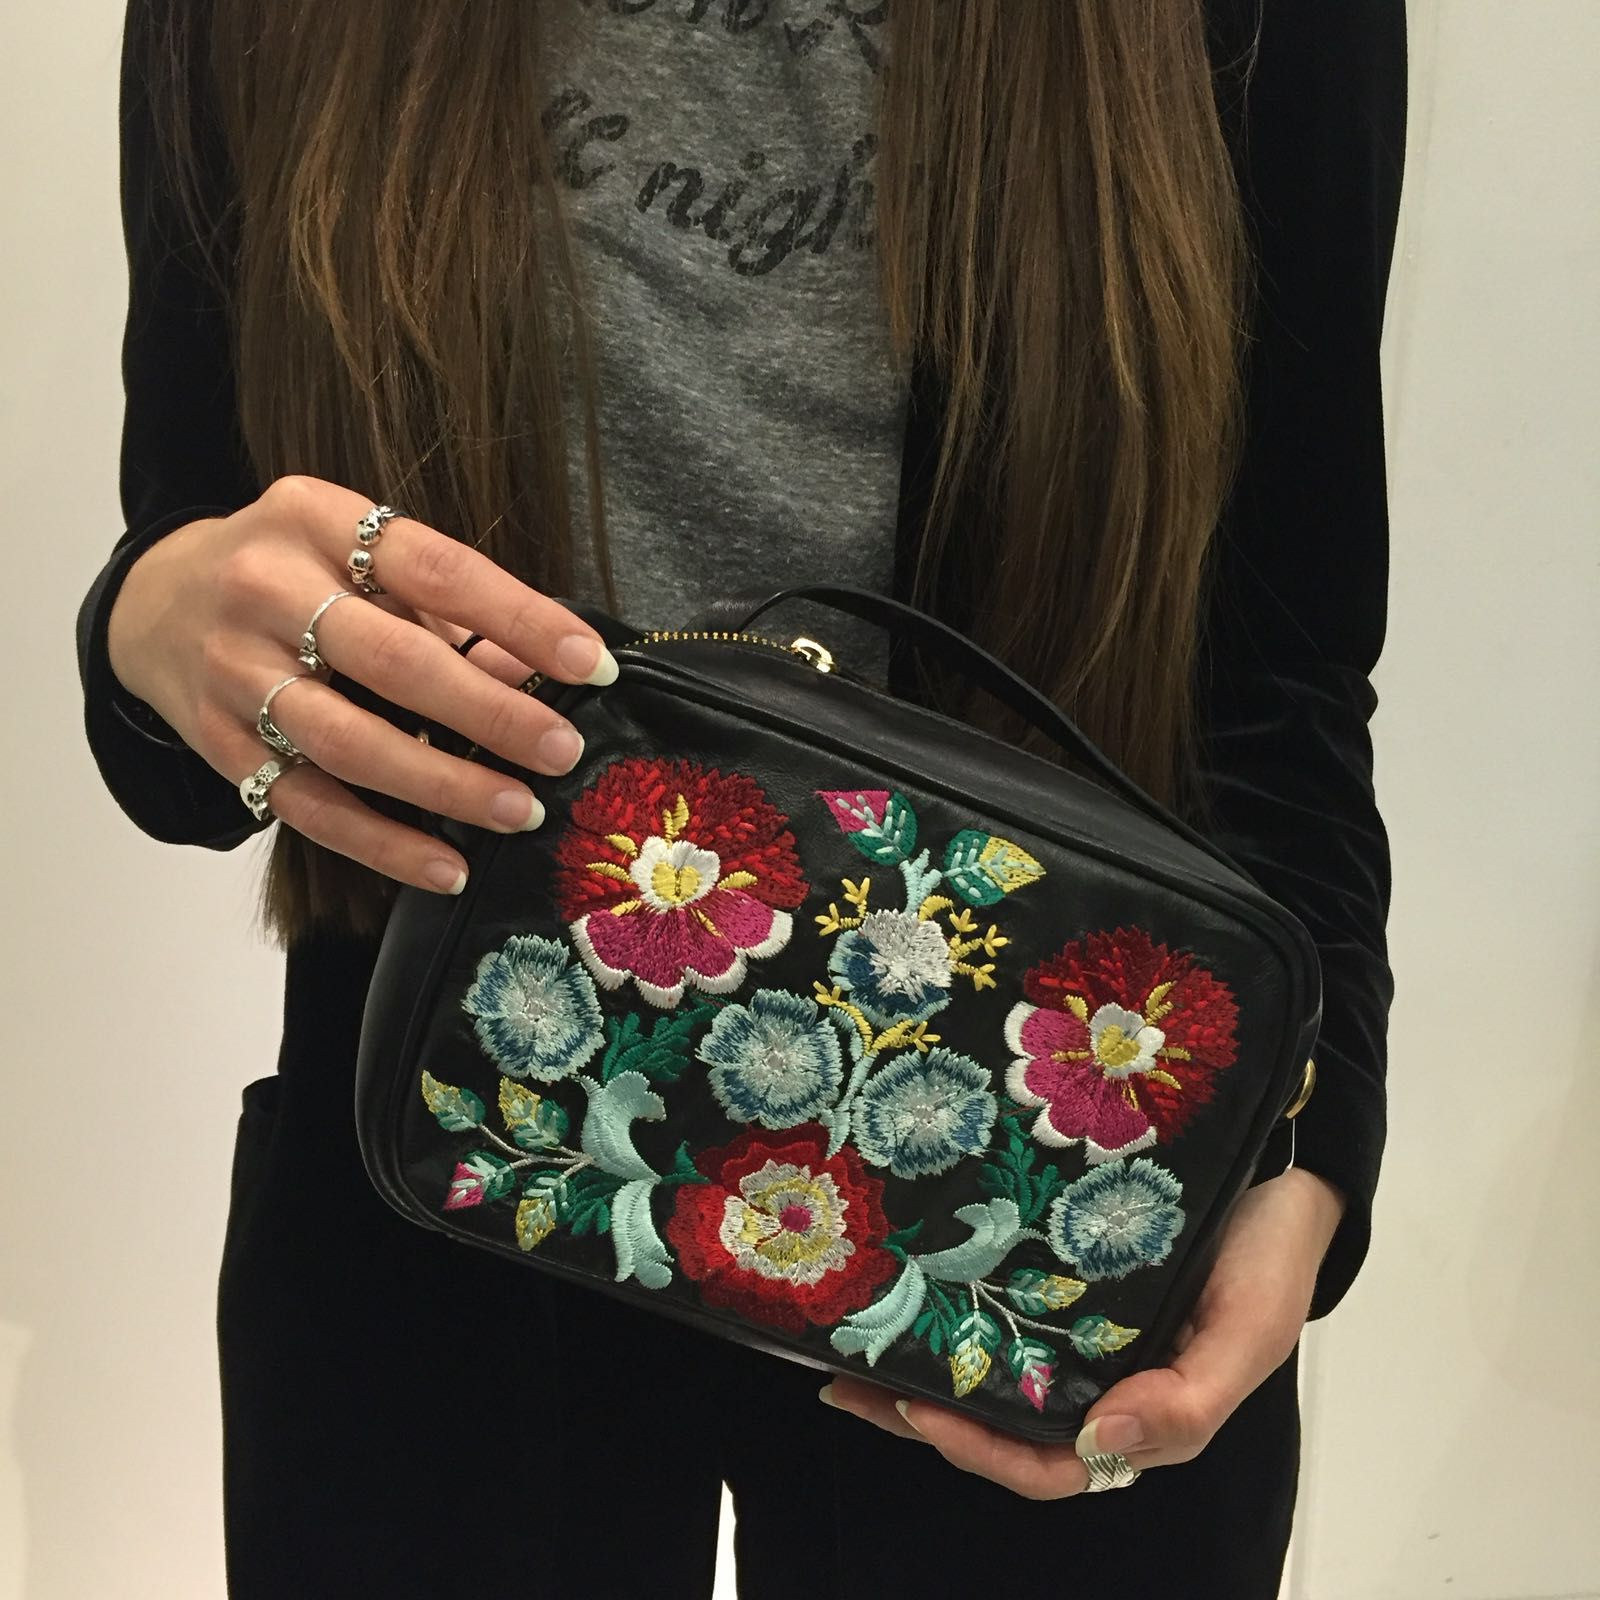 Take Cues From The '60s Trend With This Embroidered Leather Saddle Bag A  Clean